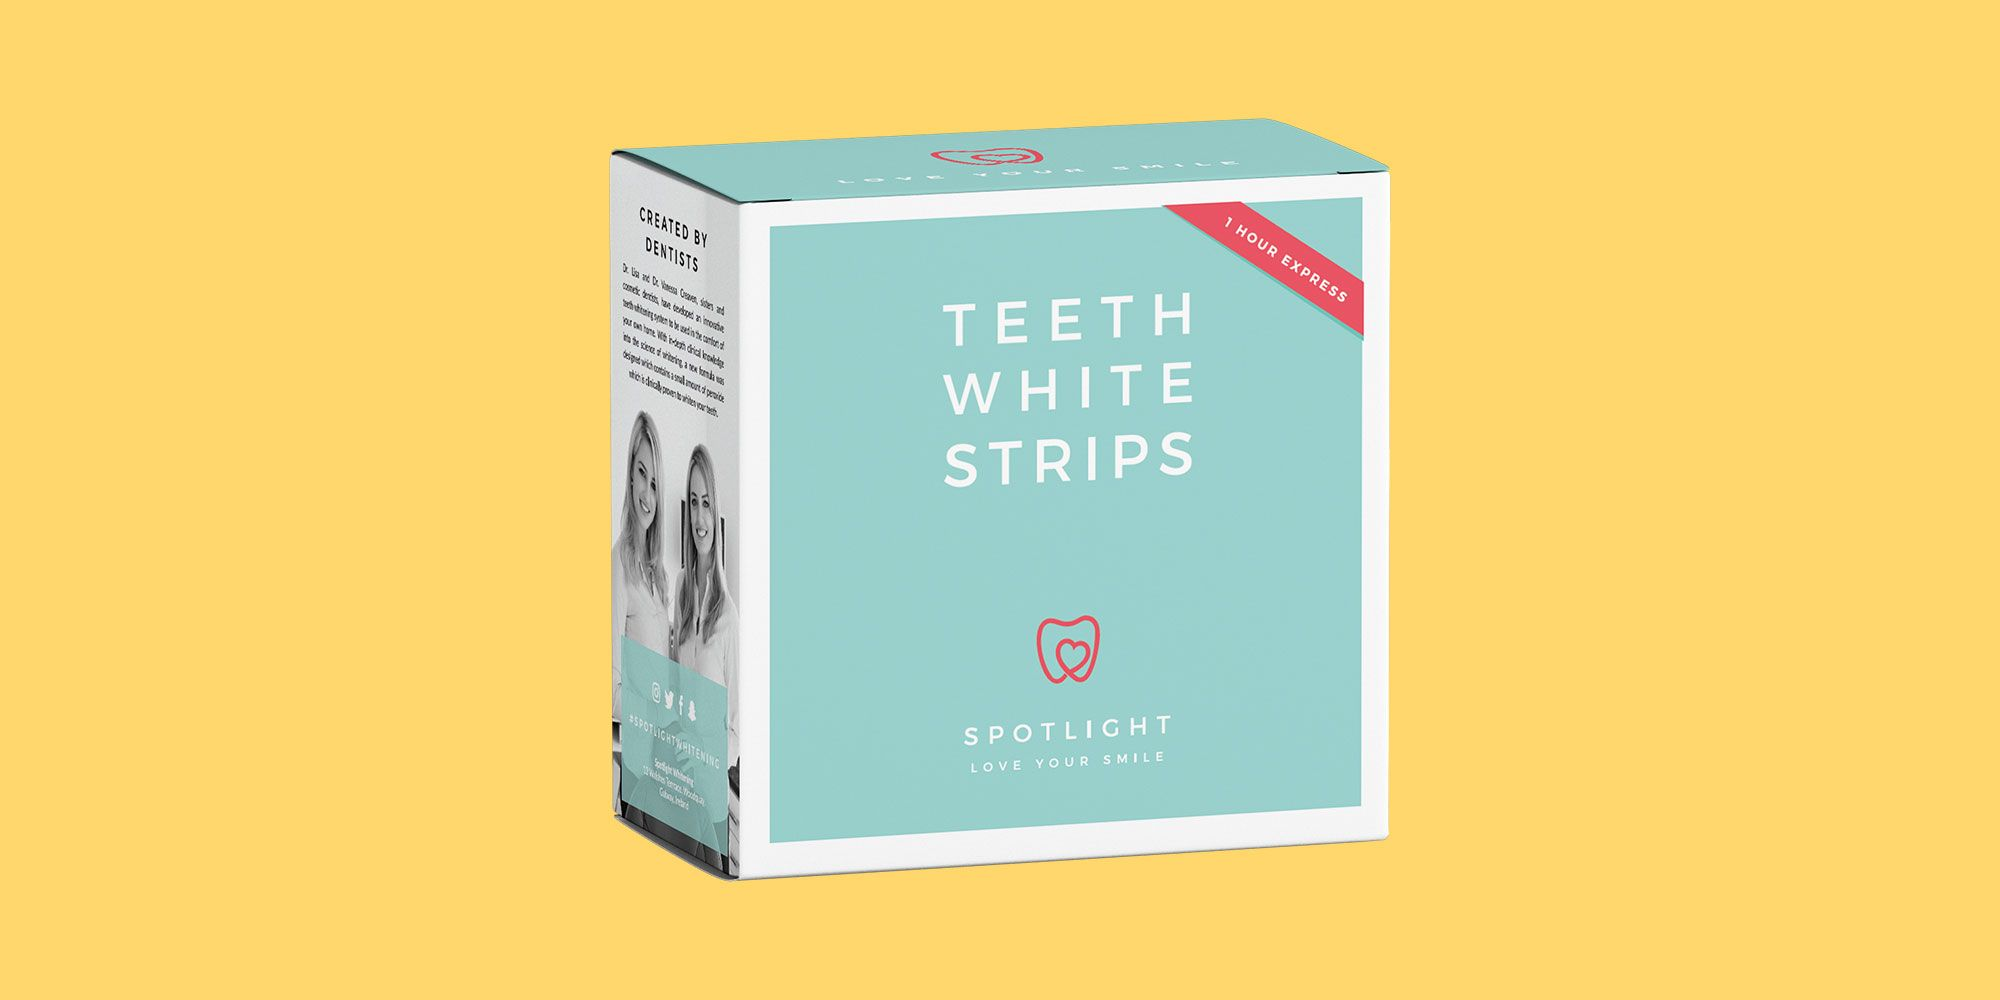 Spotlight Teeth Whitening Strips Review